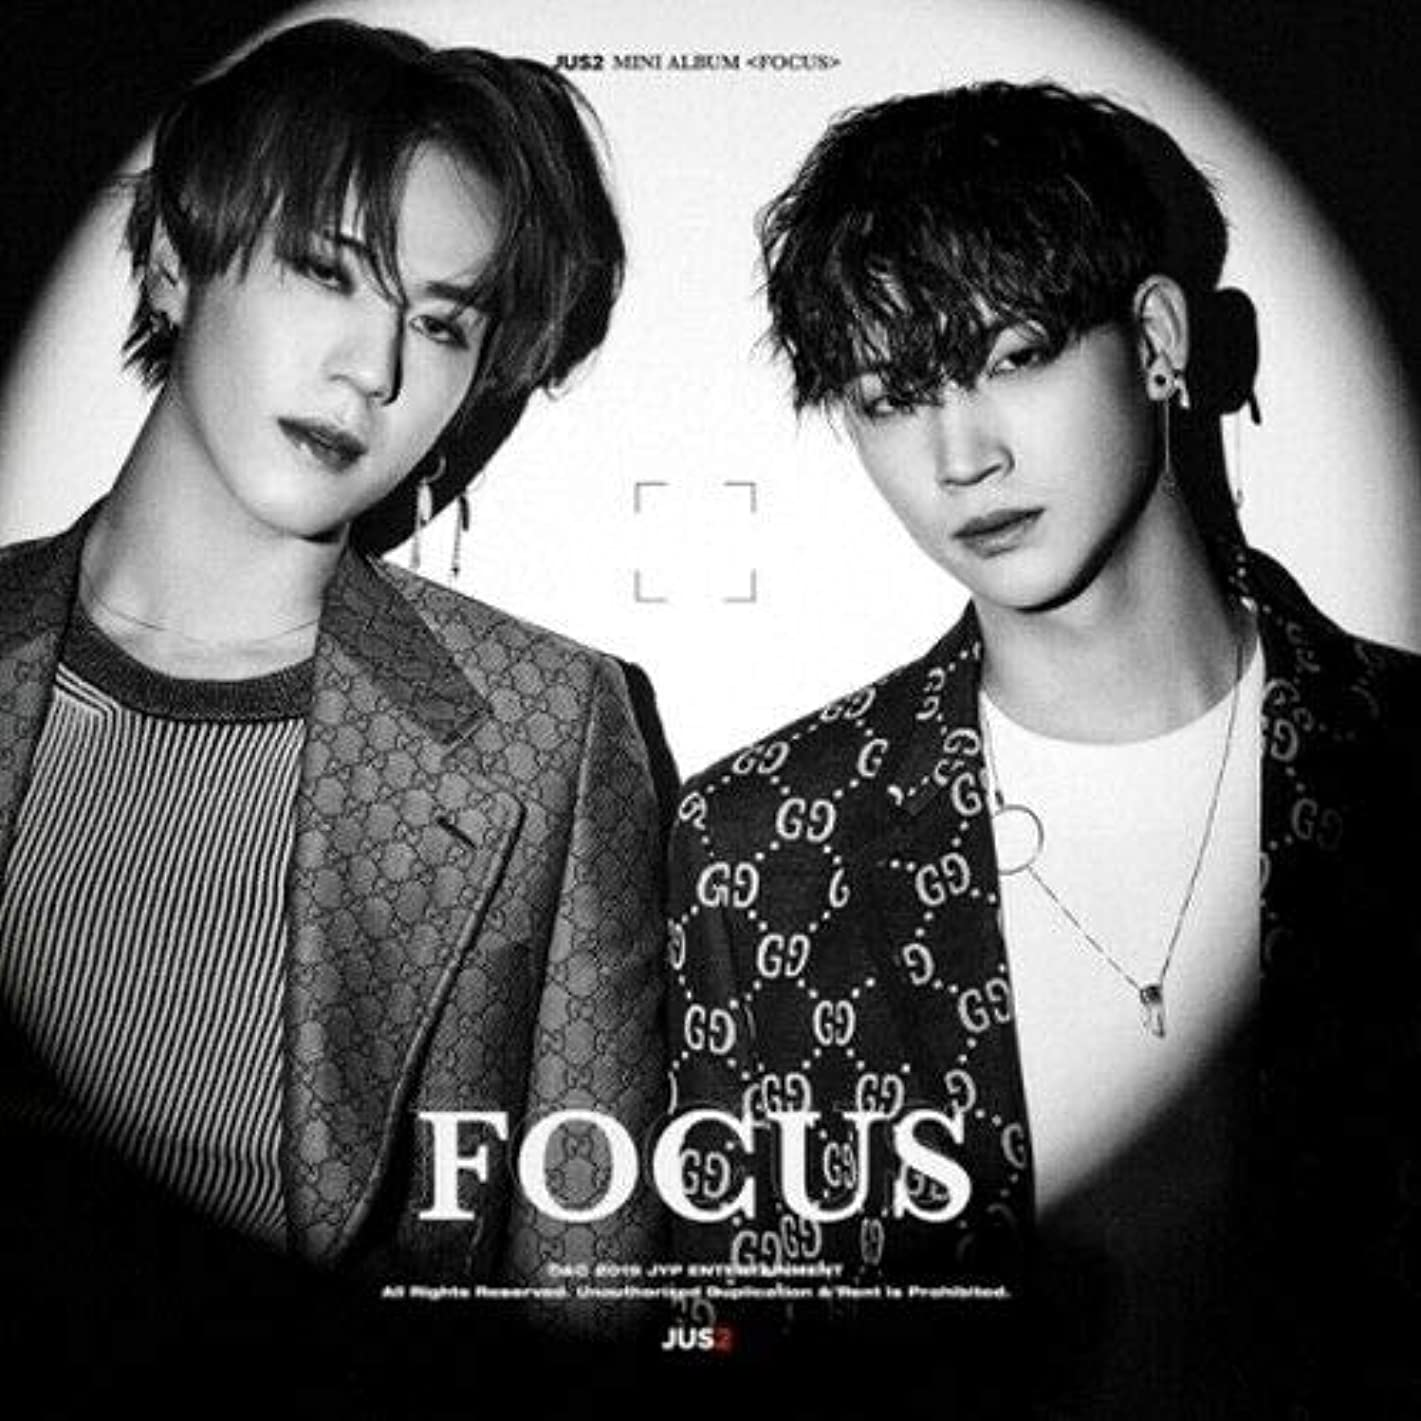 GOT7 Unit JUS2 - [Focus] Mini Album A ver. CD+1p Folded Poster+1p Lyrics Poster/On+84p PhotoBook+2p PhotoCard+1p Unit PhotoCard+Accordion Book+Extra PhotoCard Set+Tracking K-POP Sealed